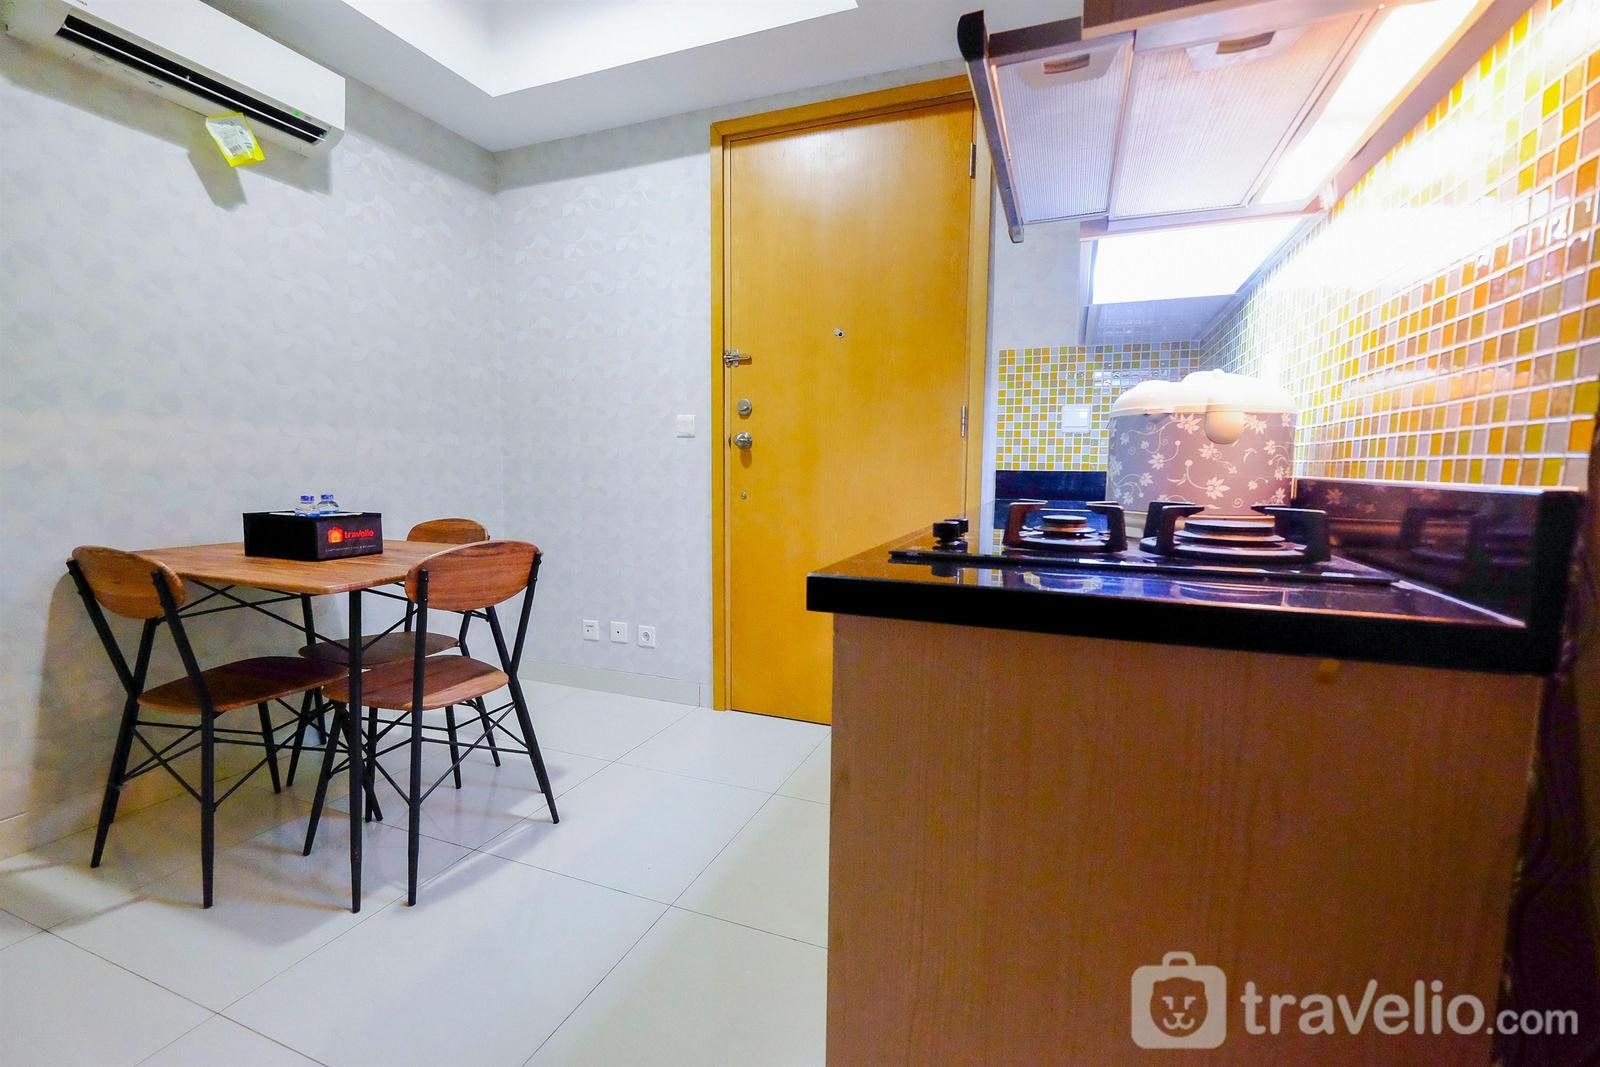 The Mansion Kemayoran - 1BR at The Mansion Kemayoran Apartment near JIEXPO By Travelio